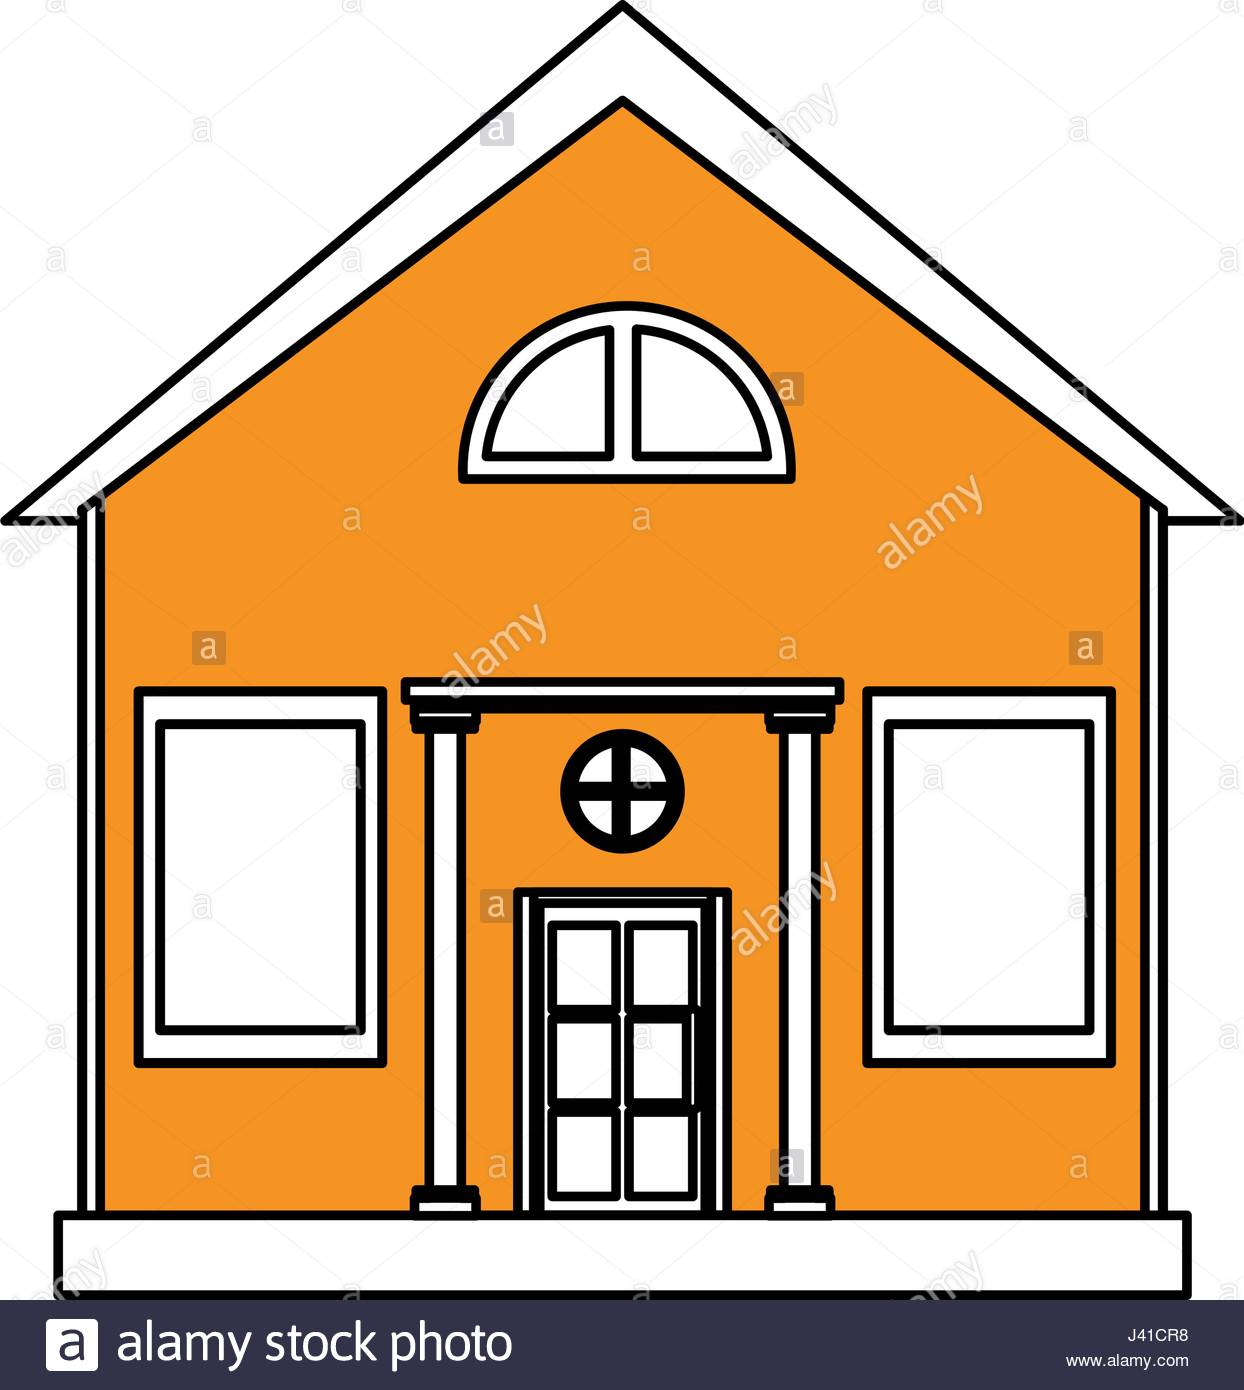 1244x1390 Color Silhouette Cartoon Yellow Facade Structure House With Modern